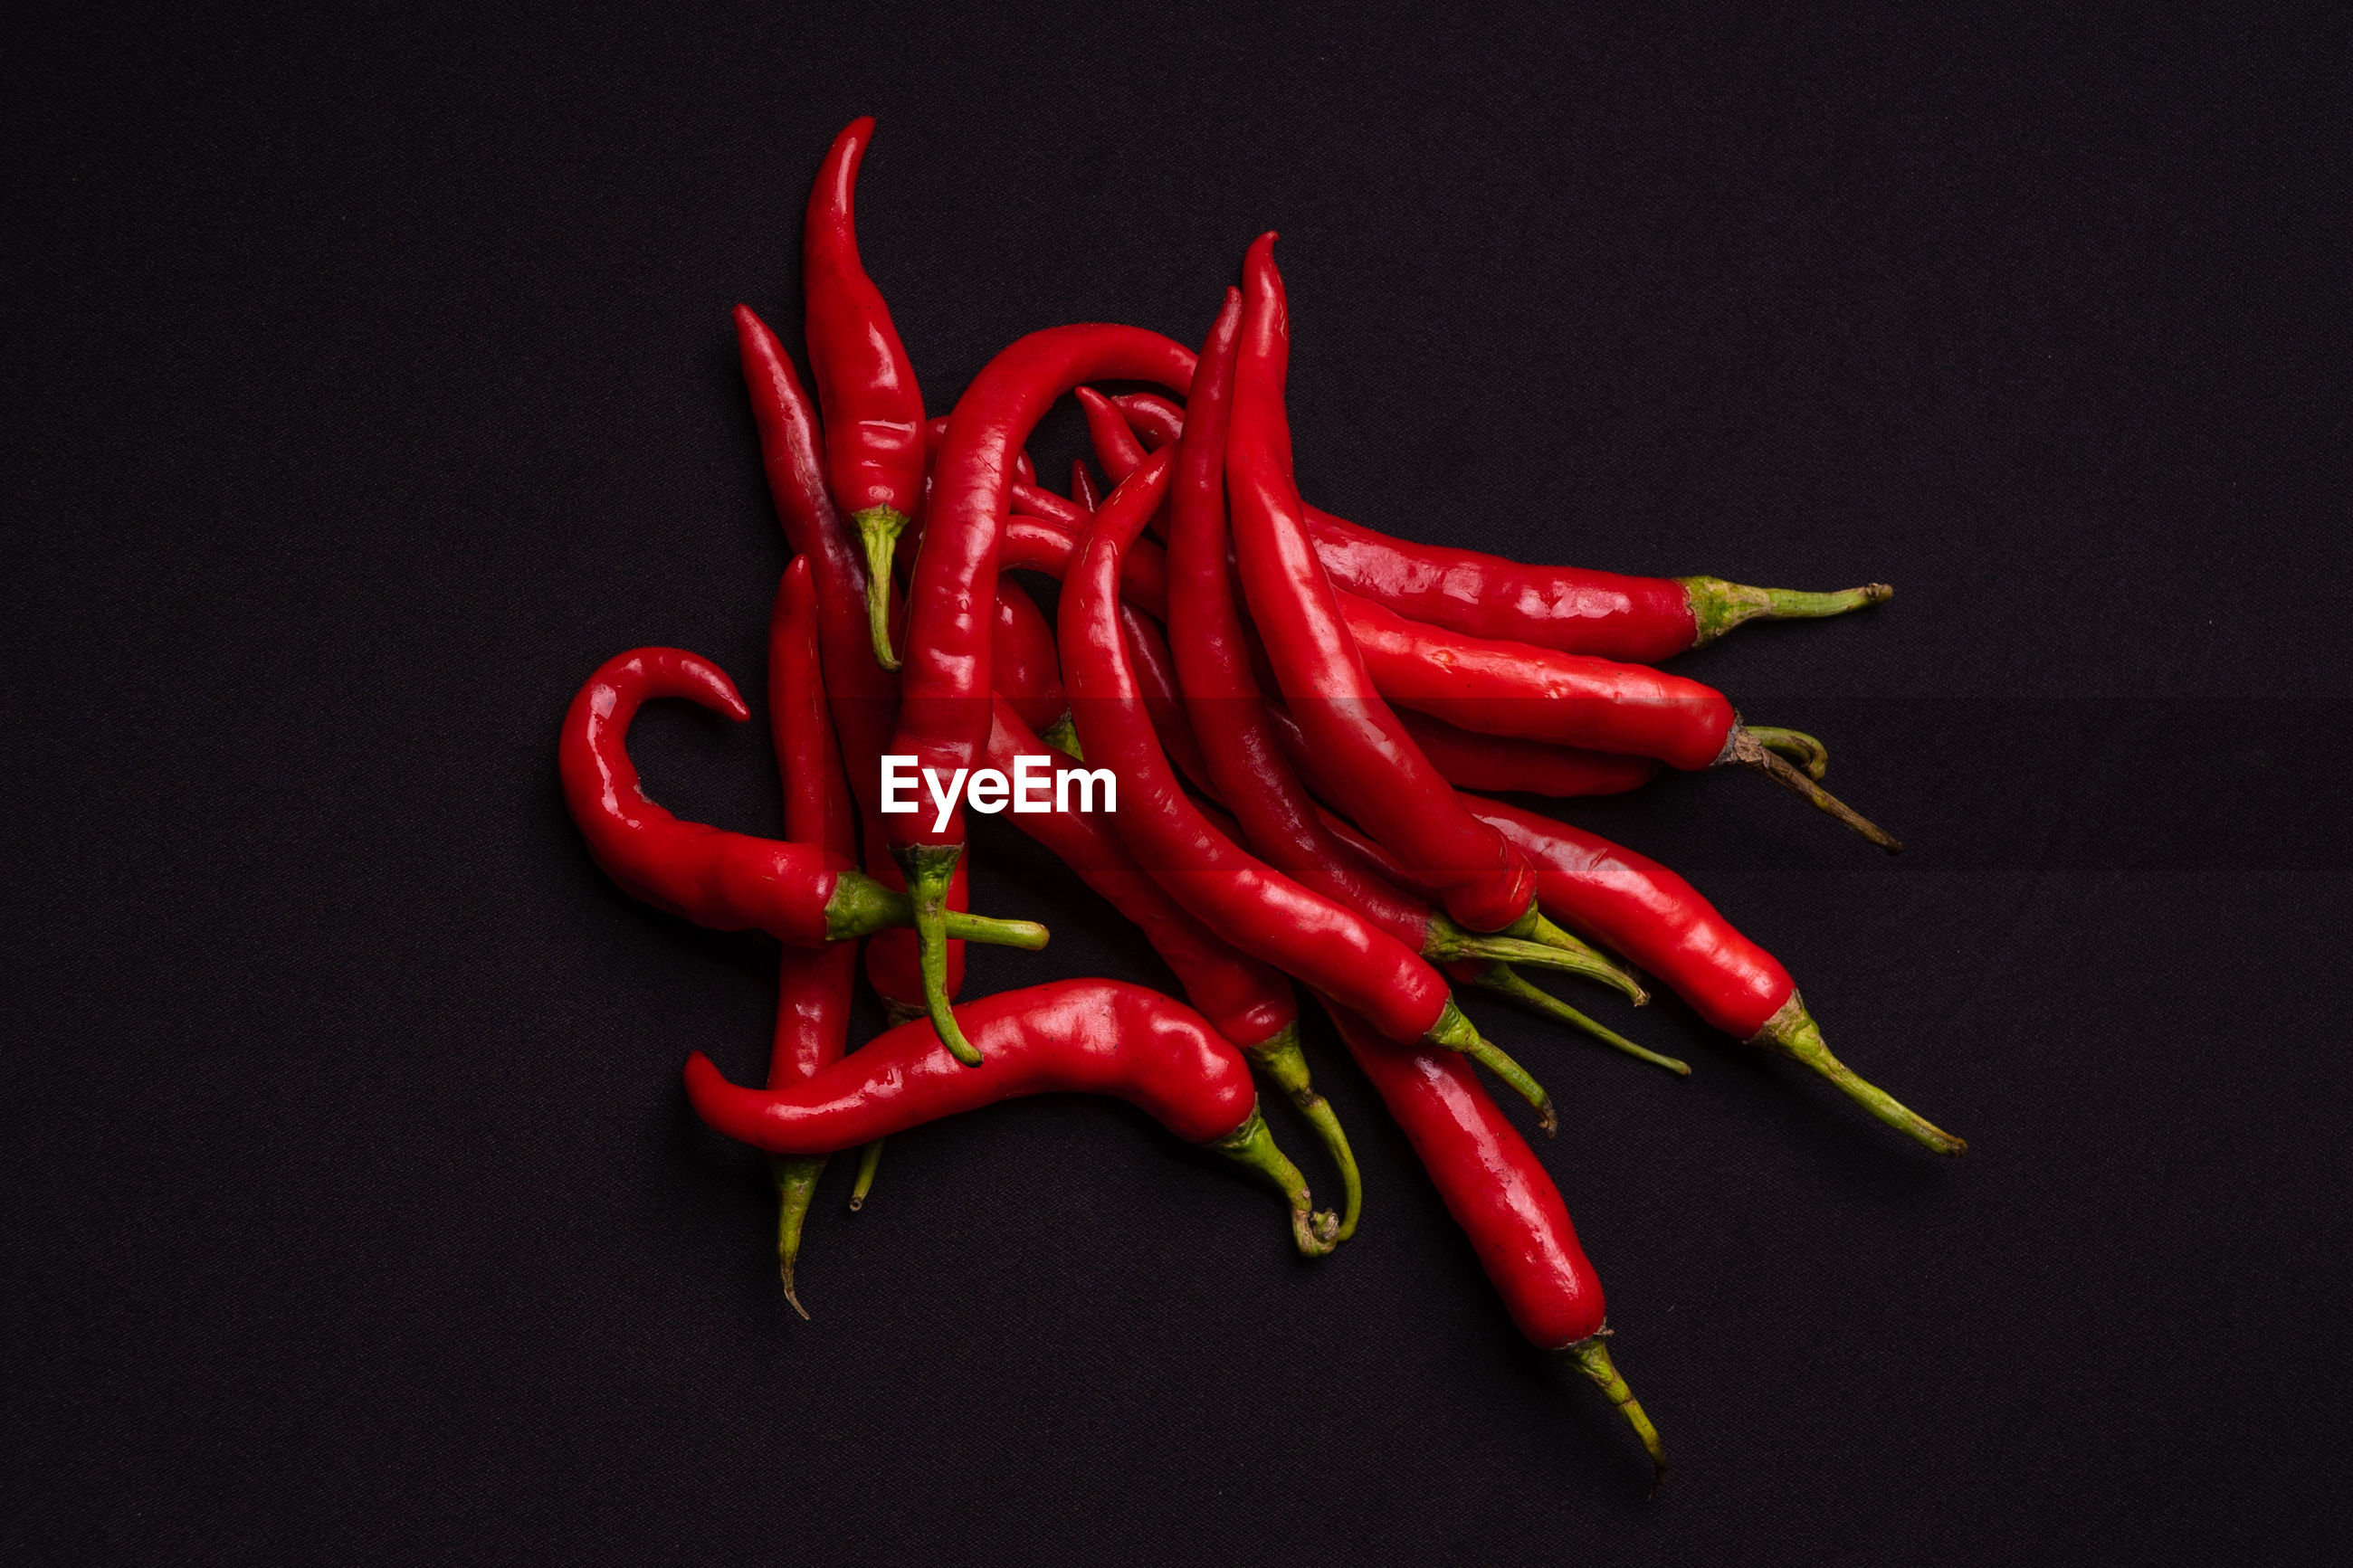 CLOSE-UP OF RED CHILI PEPPERS OVER BLACK BACKGROUND